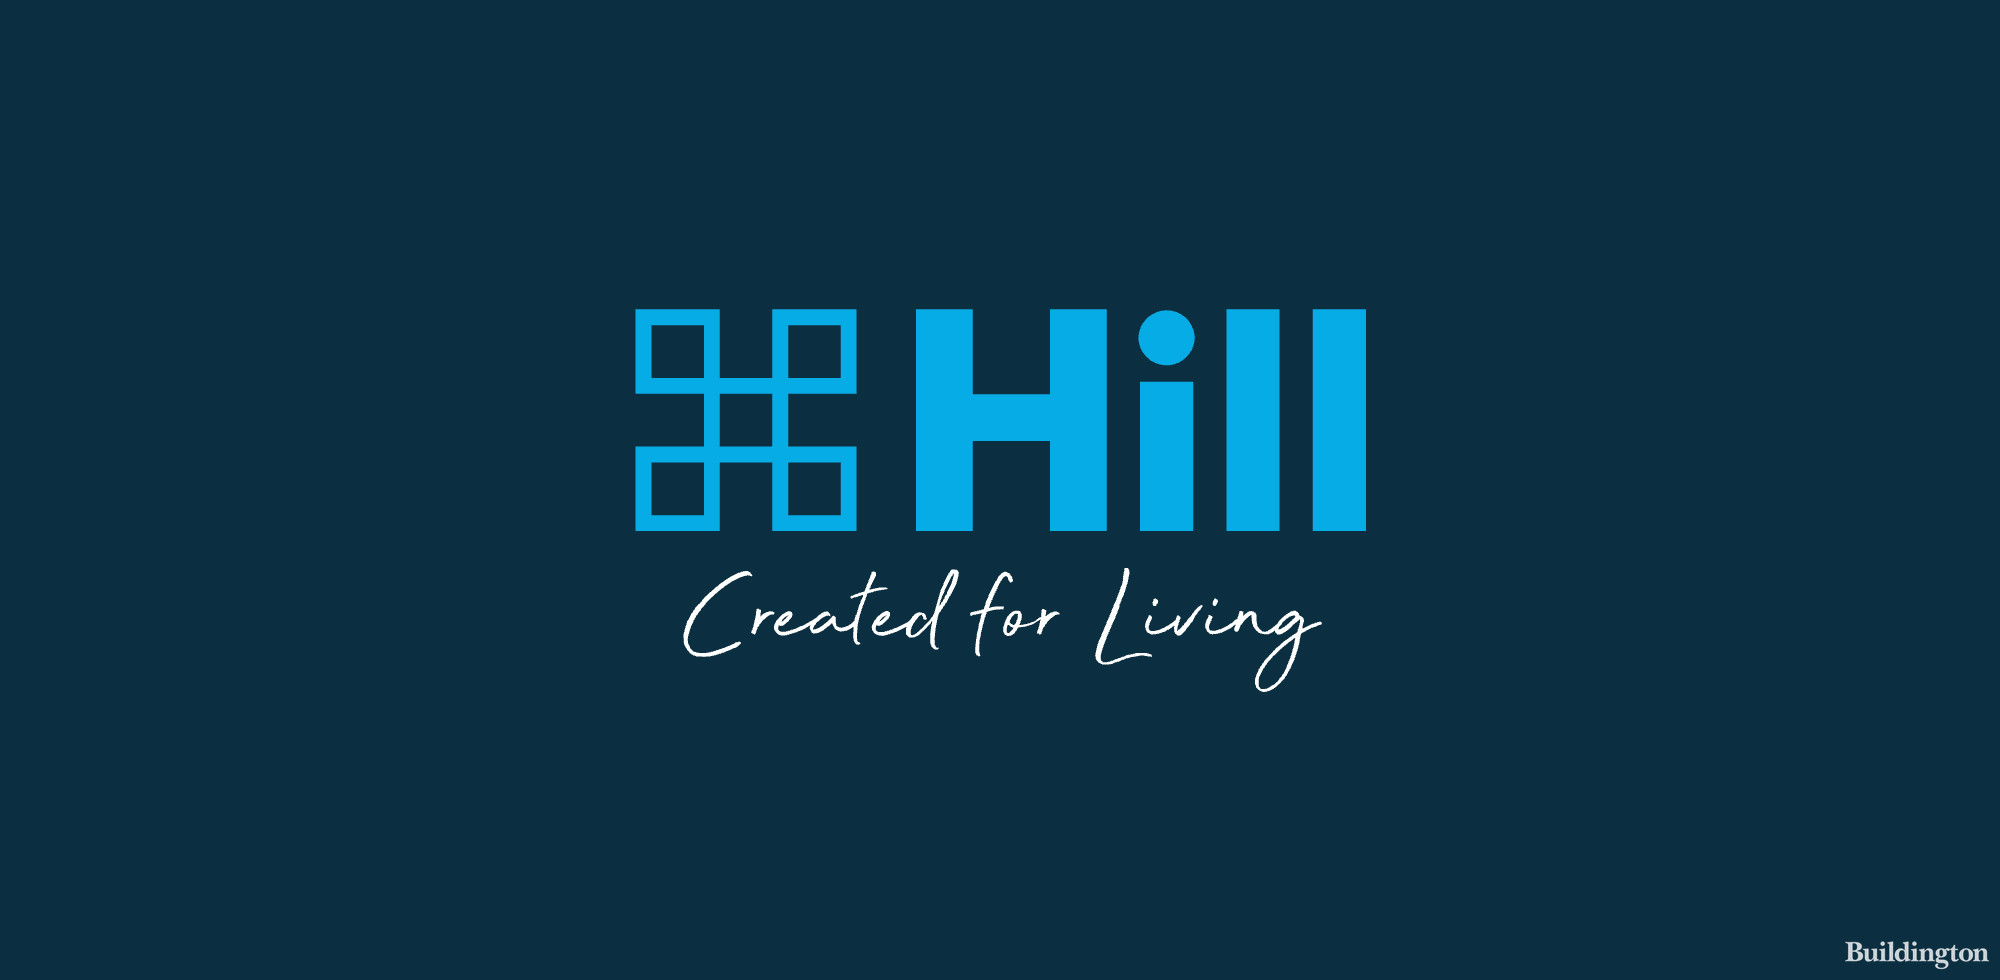 Created For Living - Hill. The scheme is delivered in partnership between developer Hill Group and housing provider Notting Hill Genesis.